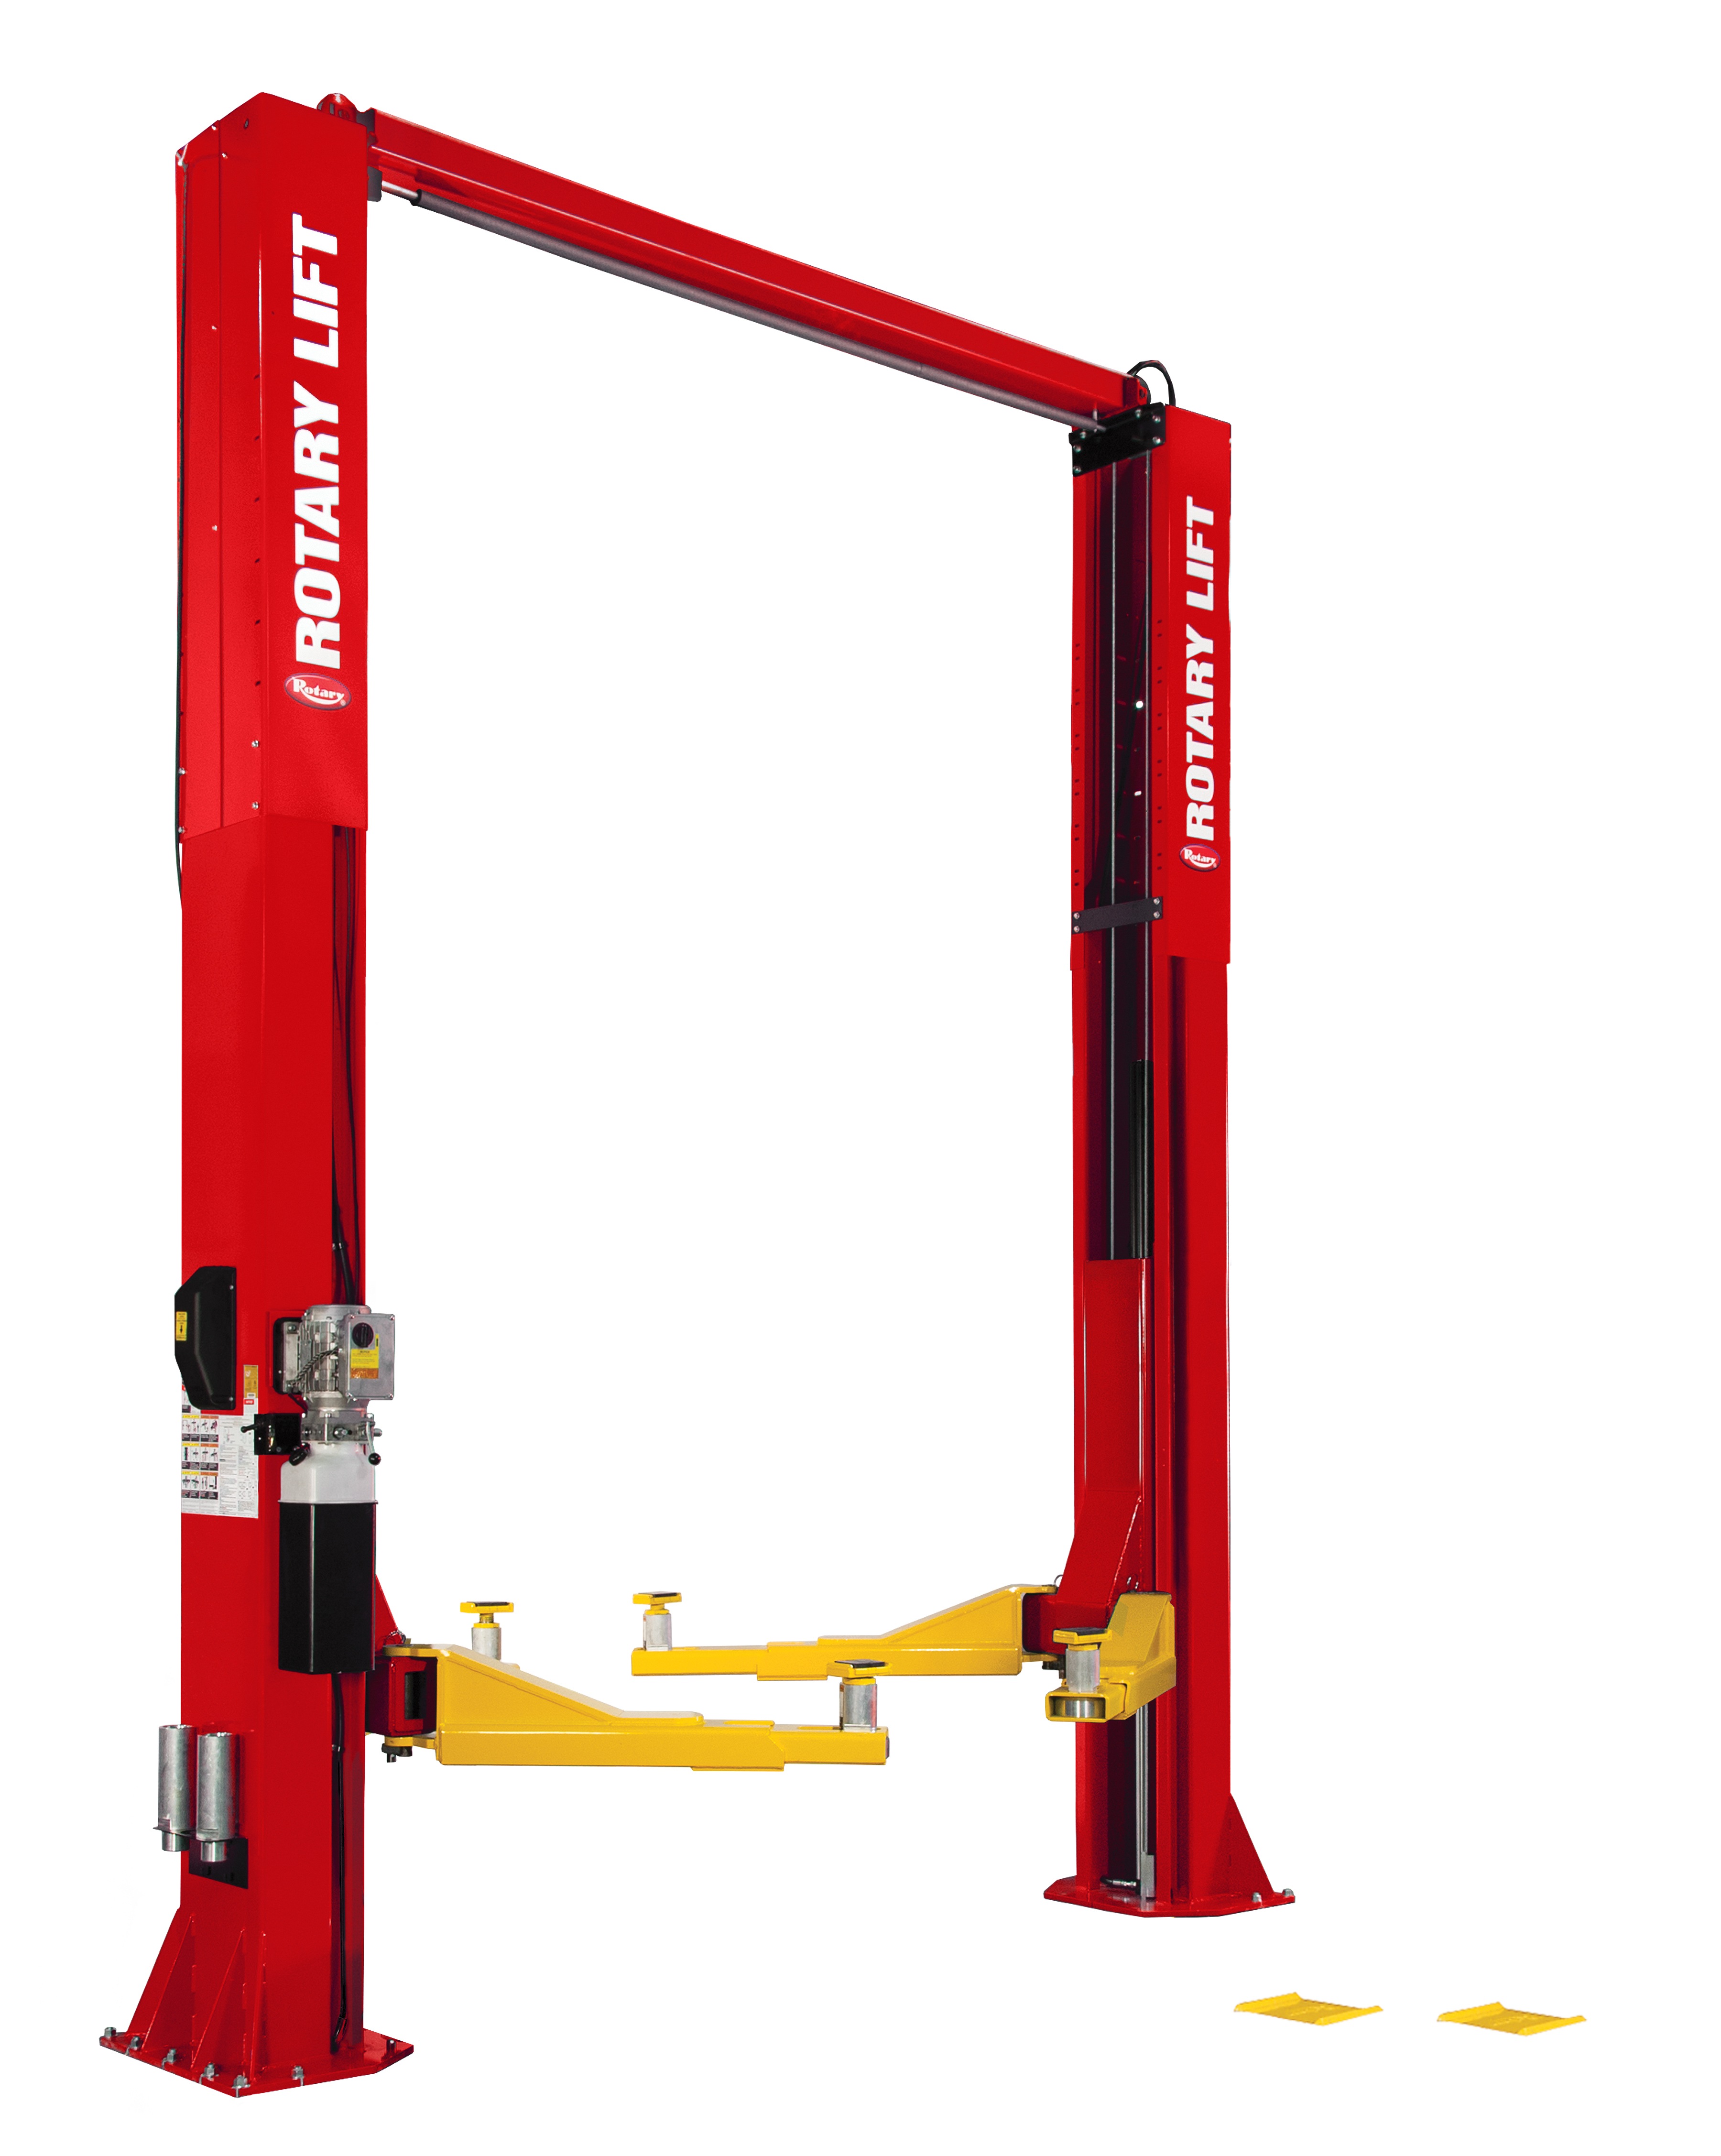 Rotary® SPO20 Trio Arms Certified Overhead 2-Post Lift RED